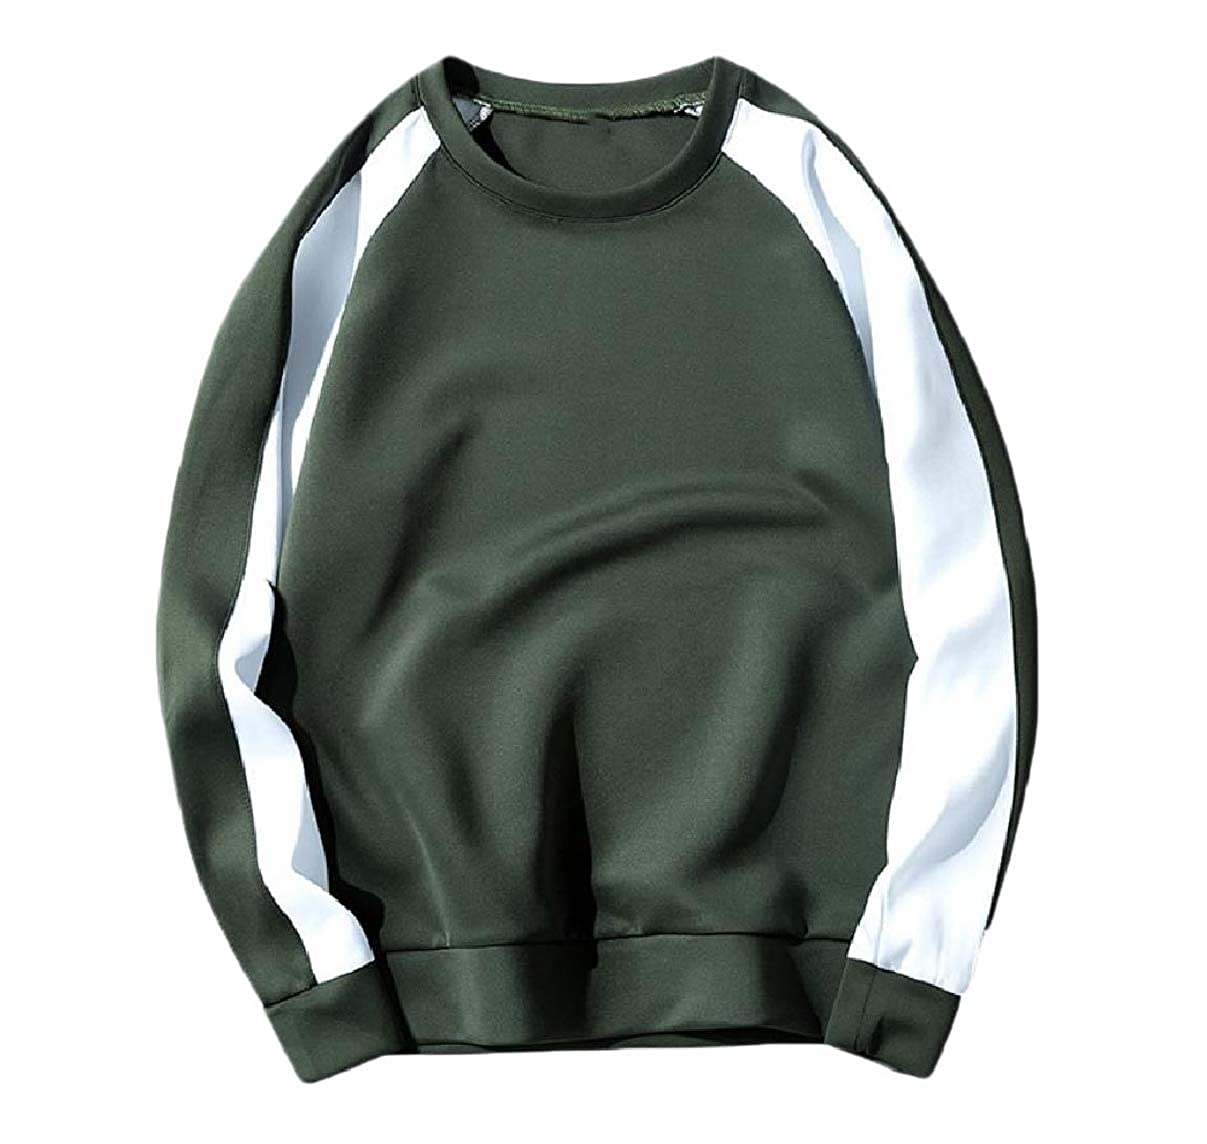 RDHOPE-Men O-Neck Contrast Casual Cozy Oversized Sweatshirts Blouse